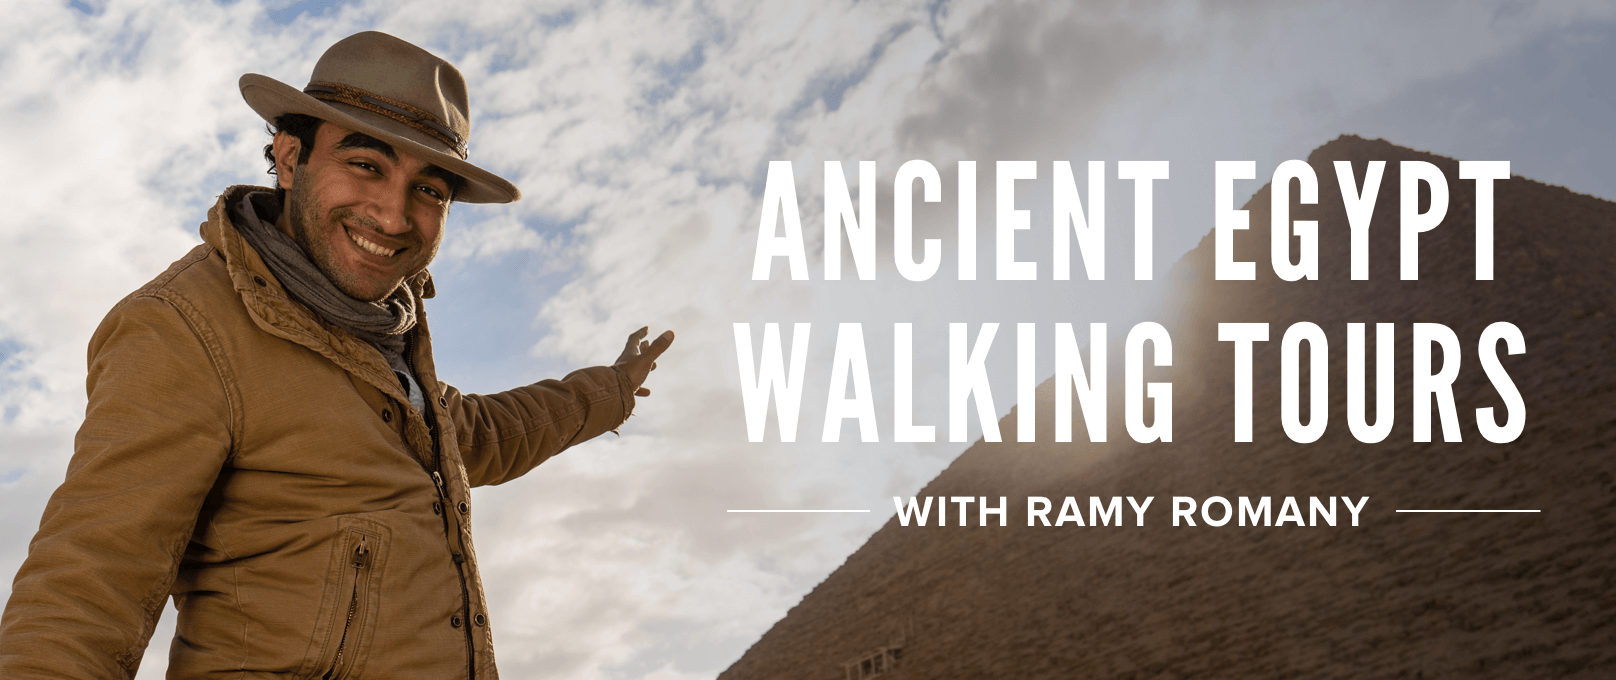 iFit Ancient Egypt Walking Tours with Ramy Romany walking workouts